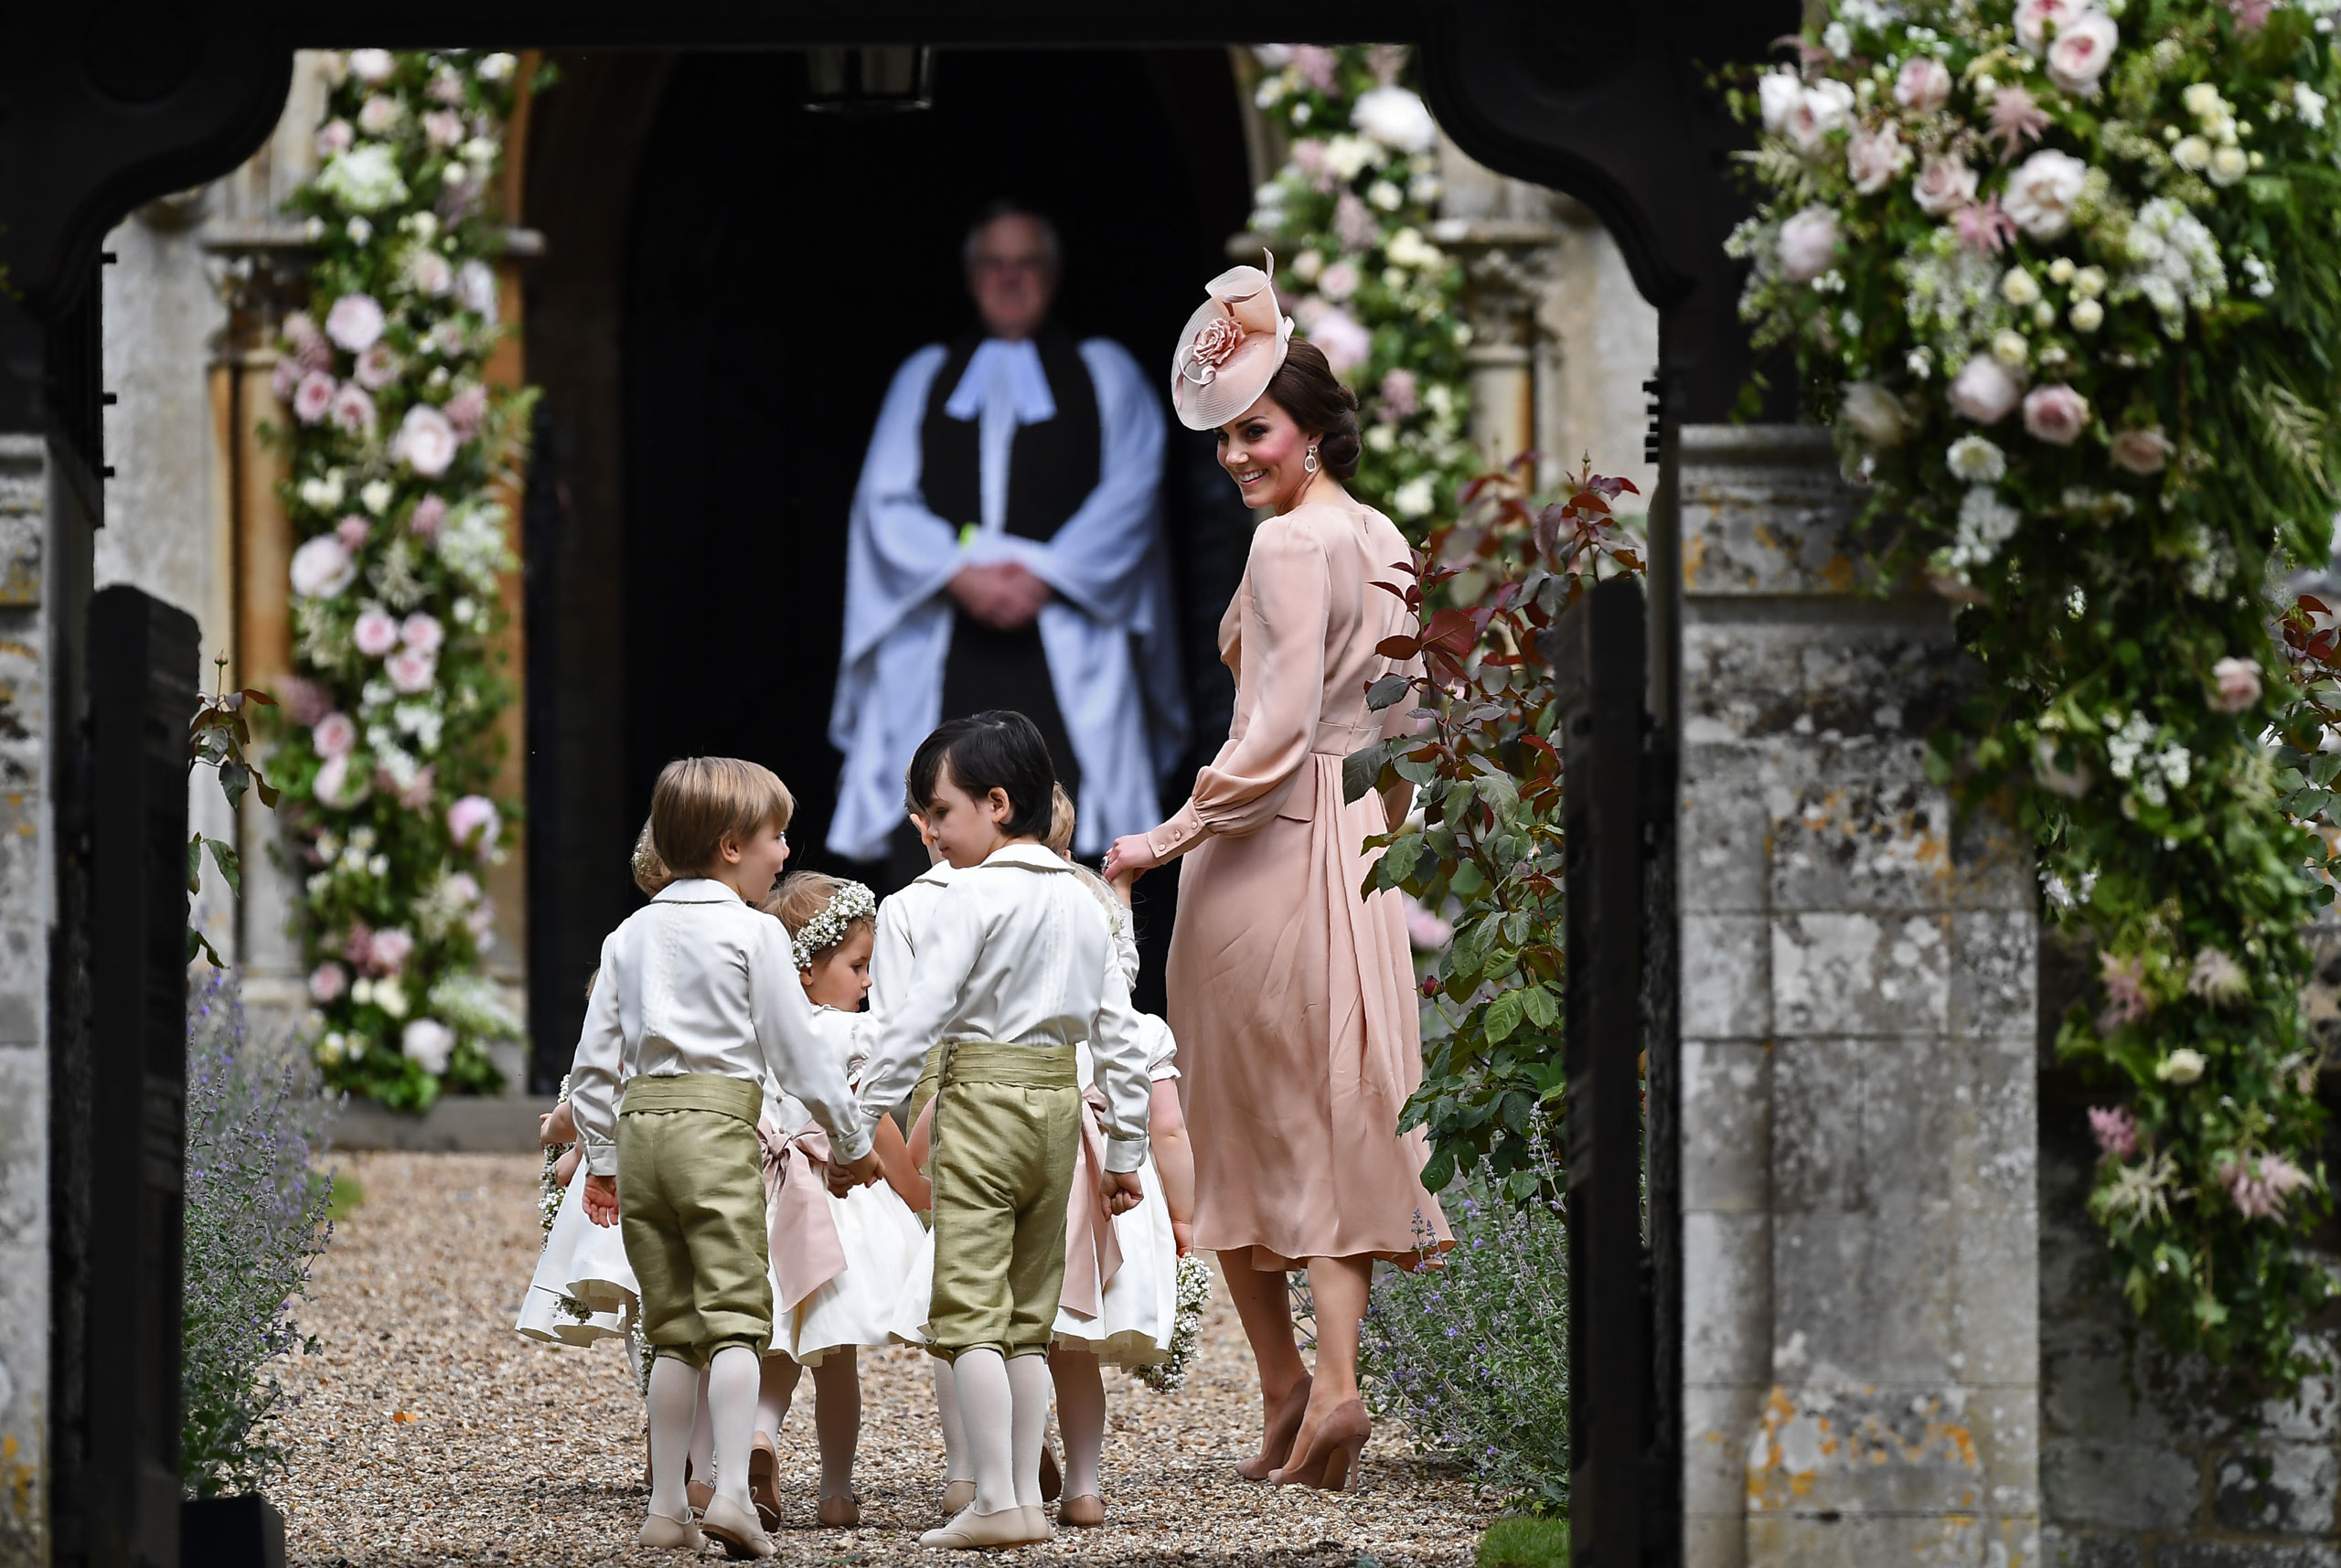 Catherine, Duchess of Cambridge walks with the bridesmaids and pageboys as they arrive as they arrive for her sister Pippa Middleton's wedding to James Matthews at St Mark's Church on May 20, 2017 in Englefield Green, England.